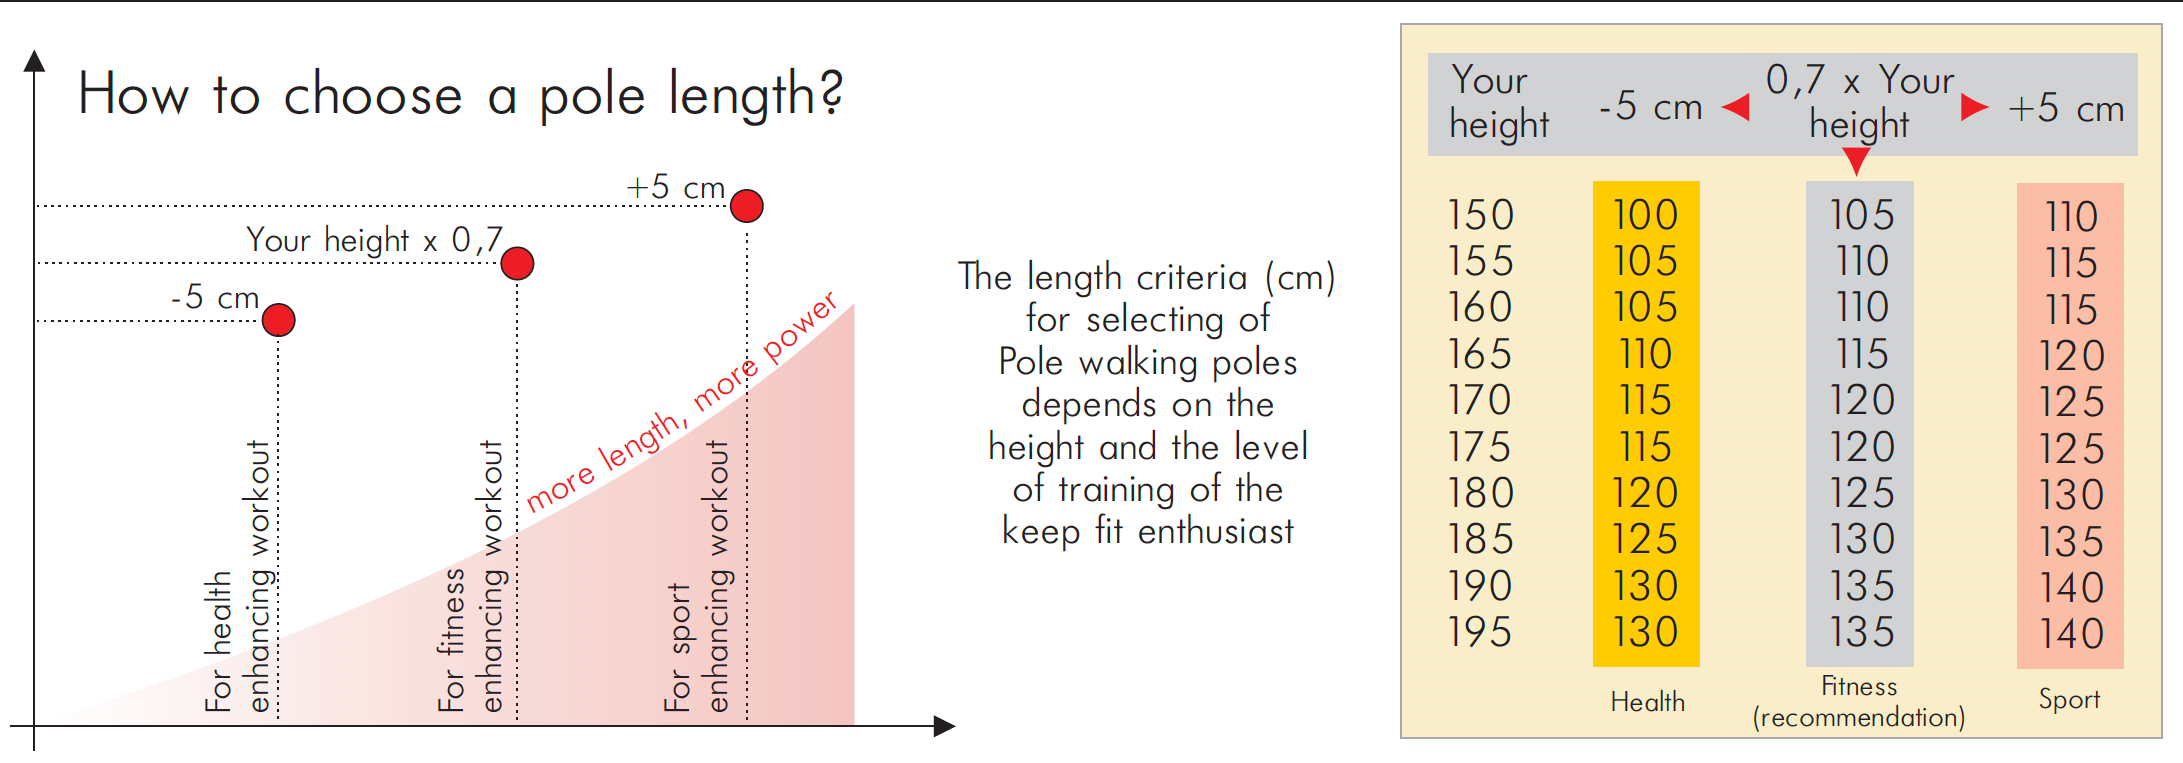 nw-poles-original-nordic-walking-length-table2.png